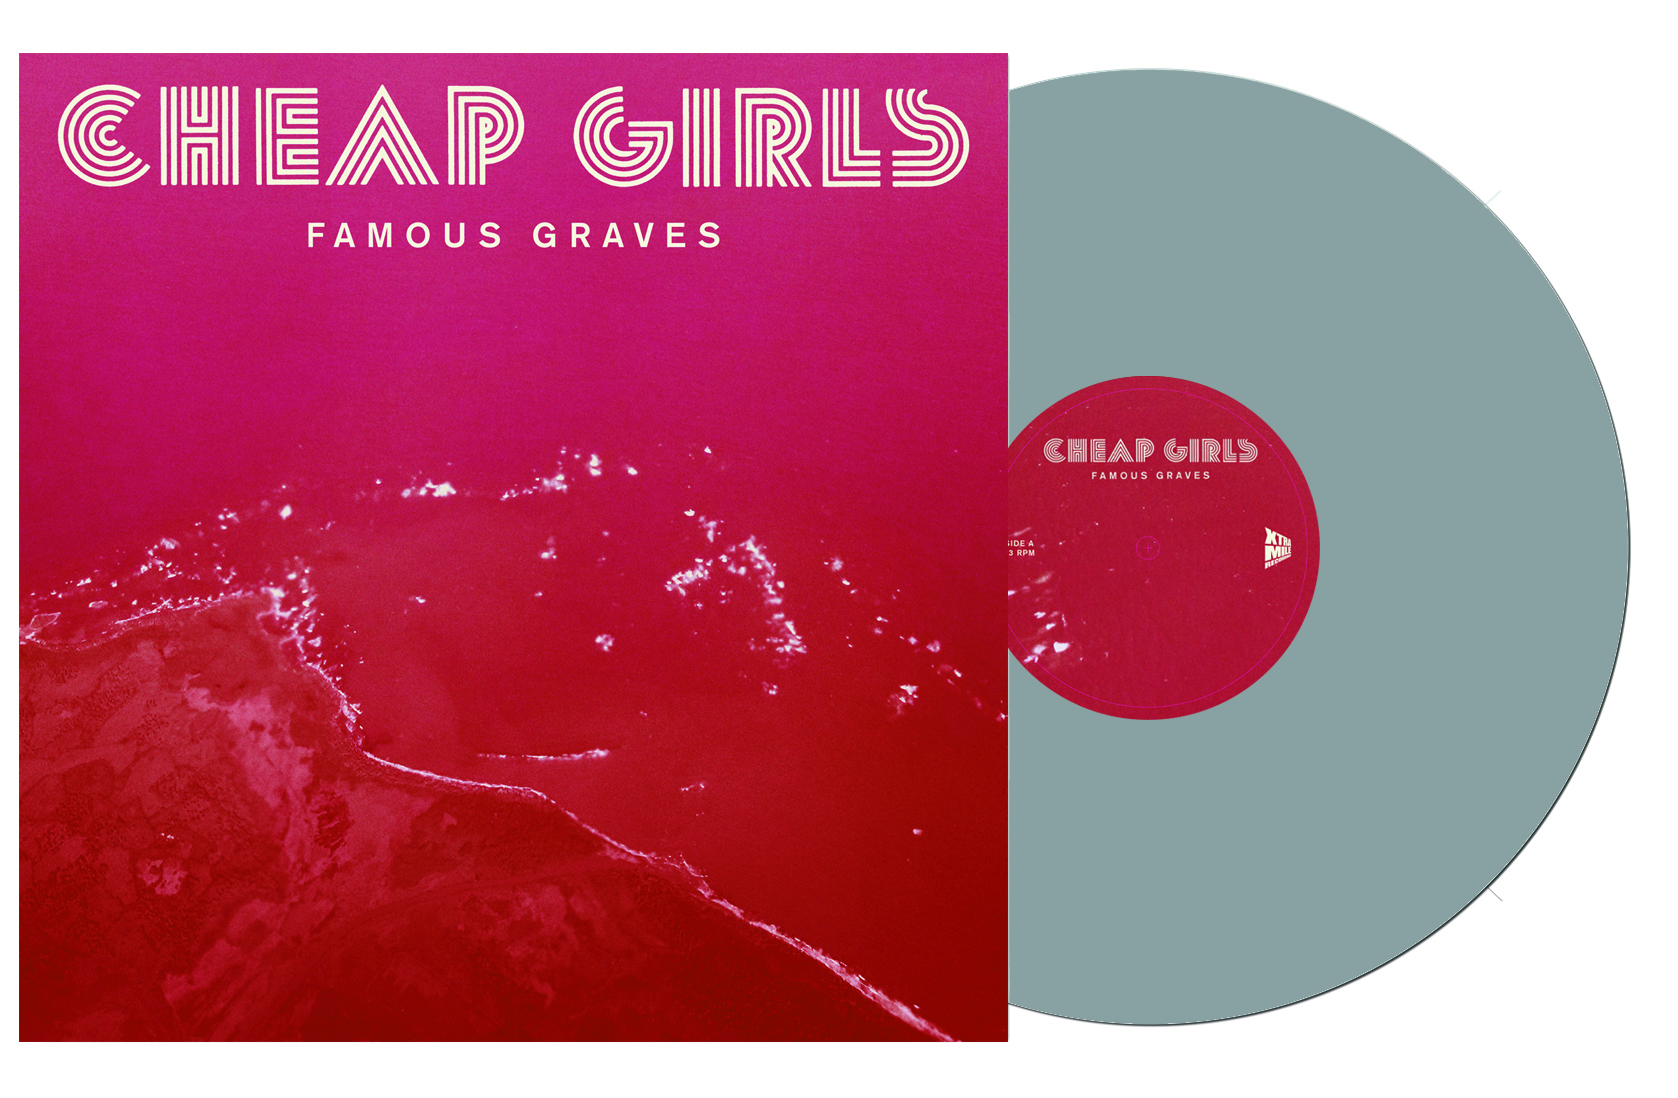 Cheap Girls Vinyl.jpg